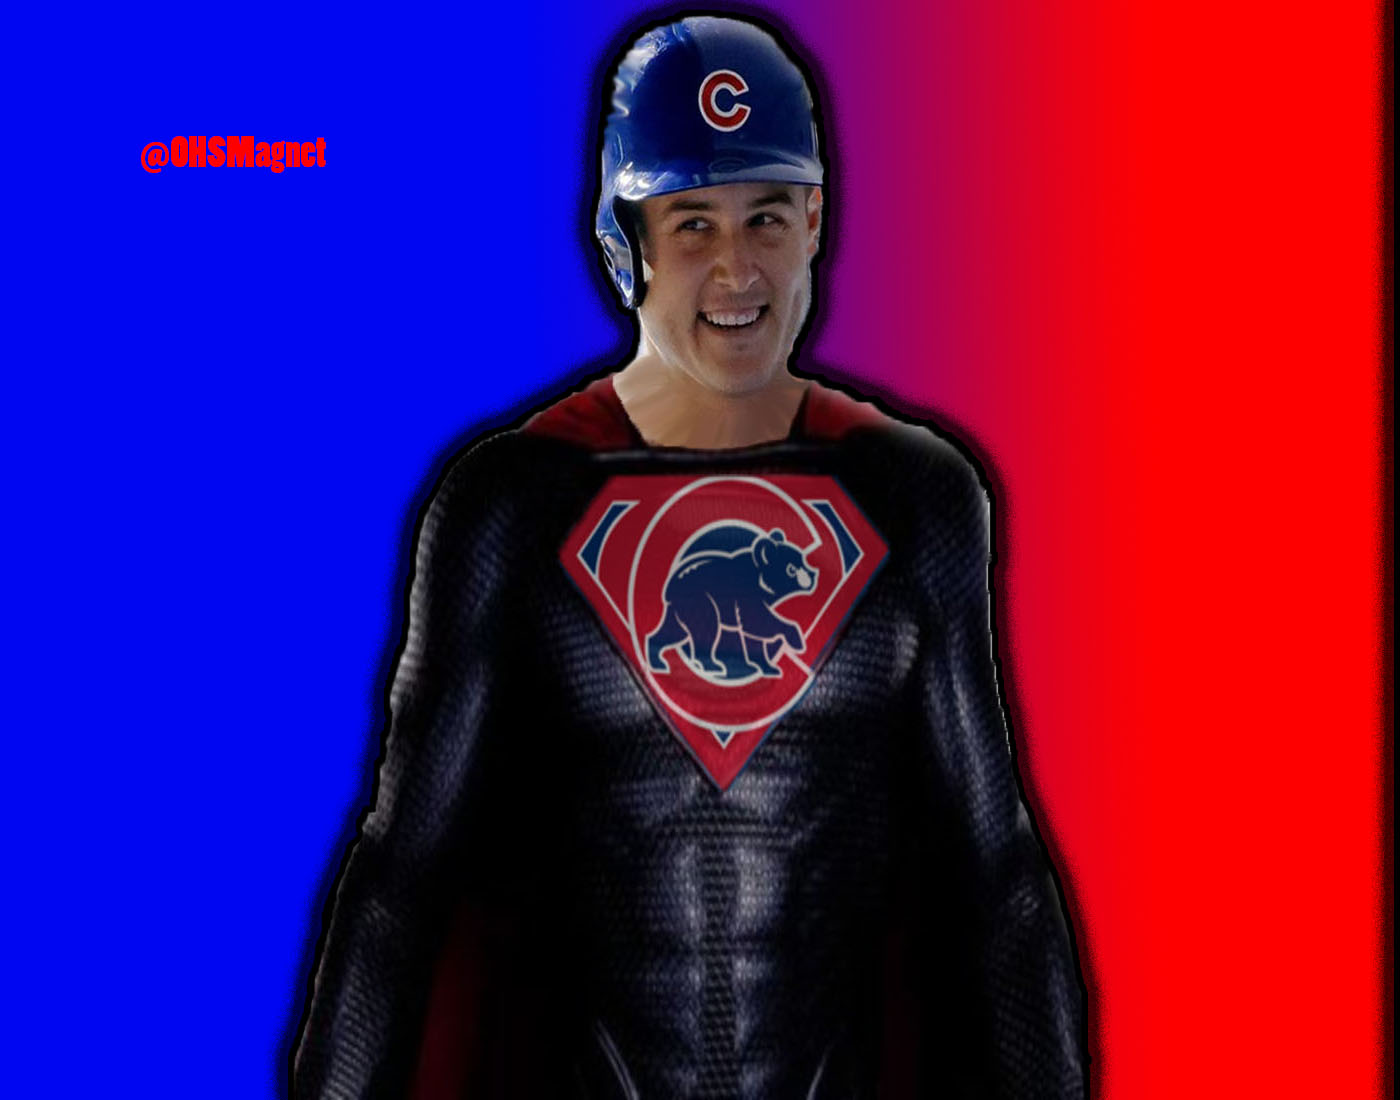 Anthony Rizzo is seen as a superhero by many